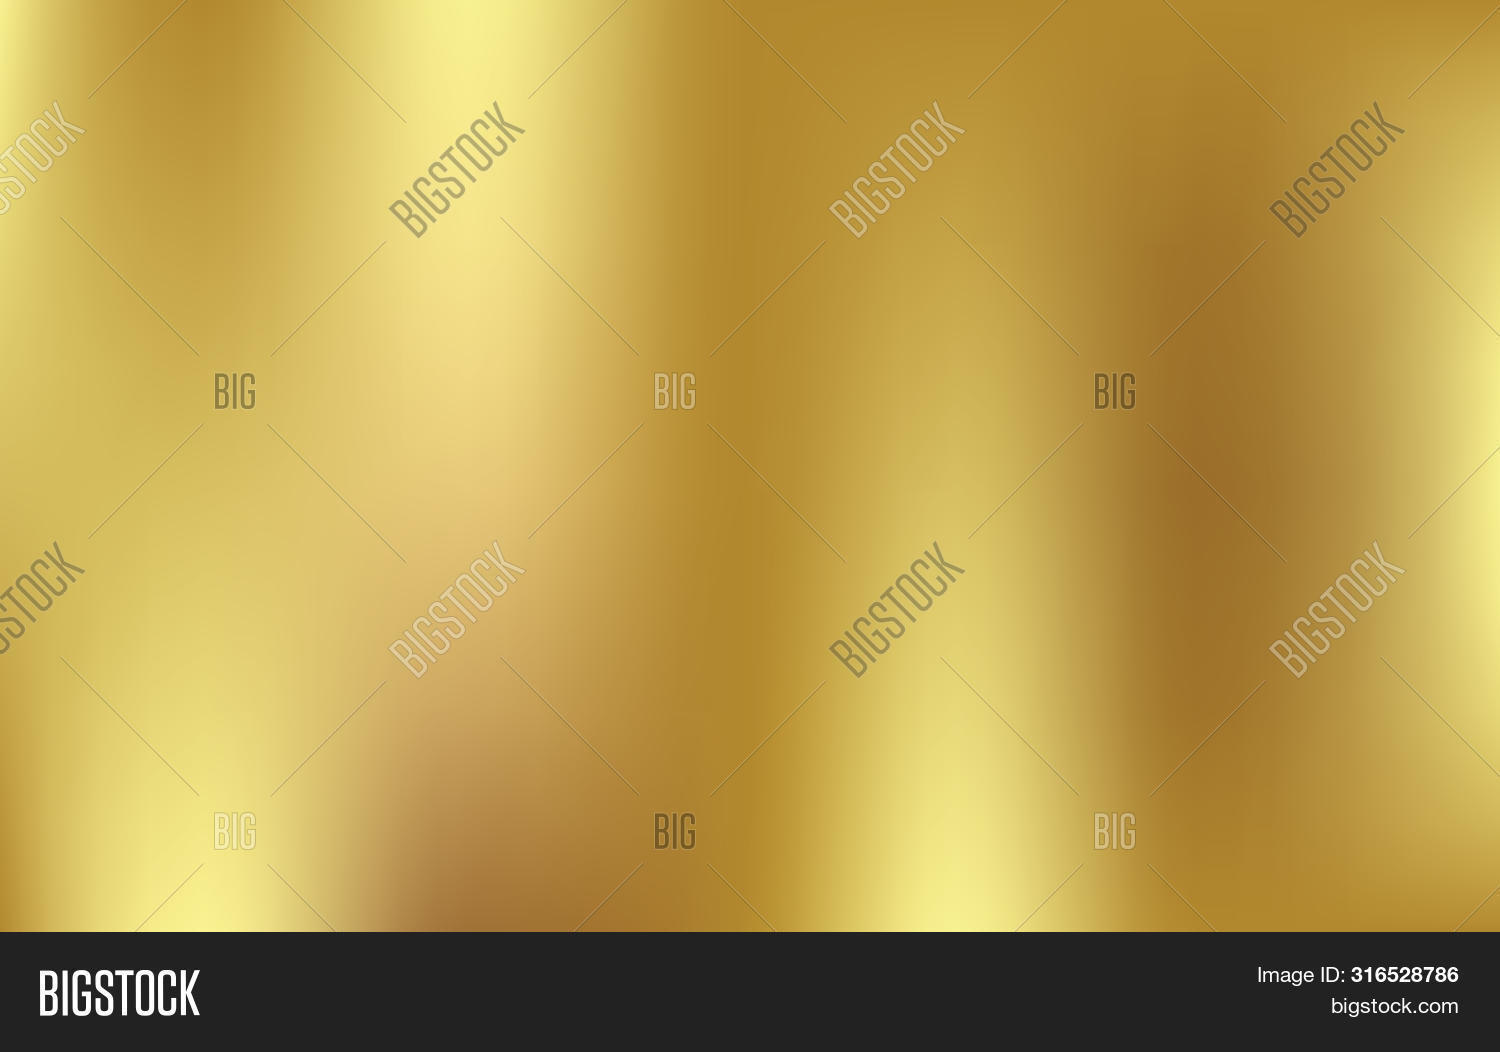 abstract,background,blur,blurred,border,bright,brush,card,coin,color,decor,decoration,design,effect,elegant,filter,foil,frame,glow,gold,golden,gradient,graphic,grunge,hologram,holographic,icon,image,iridescent,light,mesh,metal,modern,new,paper,pattern,pink,print,reflection,ribbon,seamless,shine,shiny,smooth,soft,text,texture,year,yellow